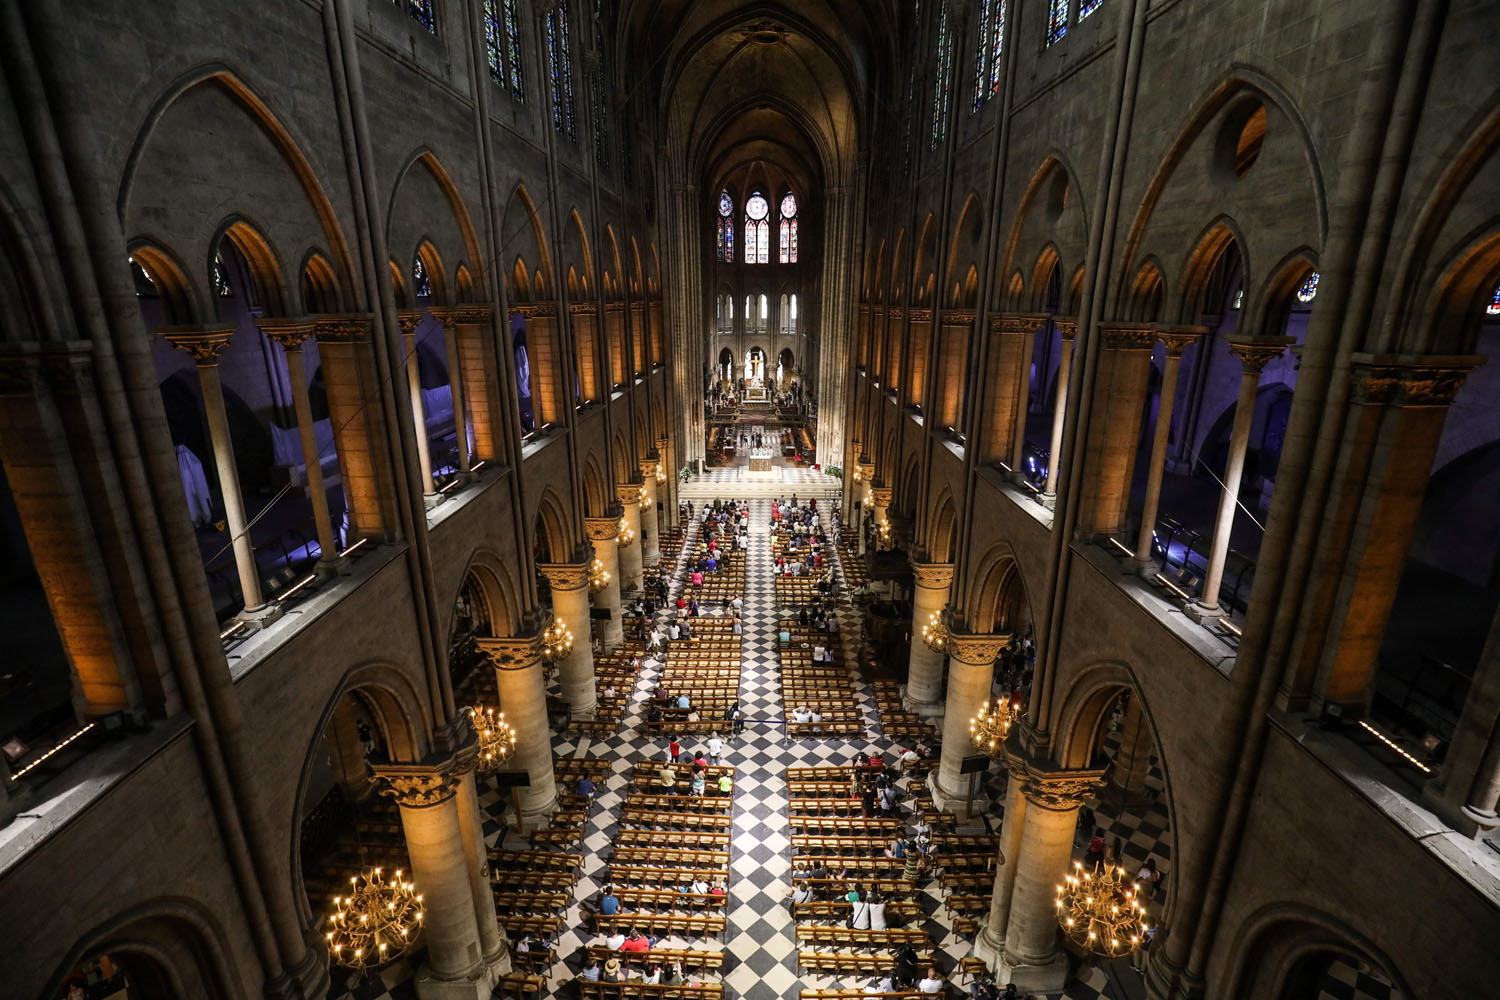 TOPSHOT-FRANCE-RELIGION-HISTORY-ARCHITECTURE